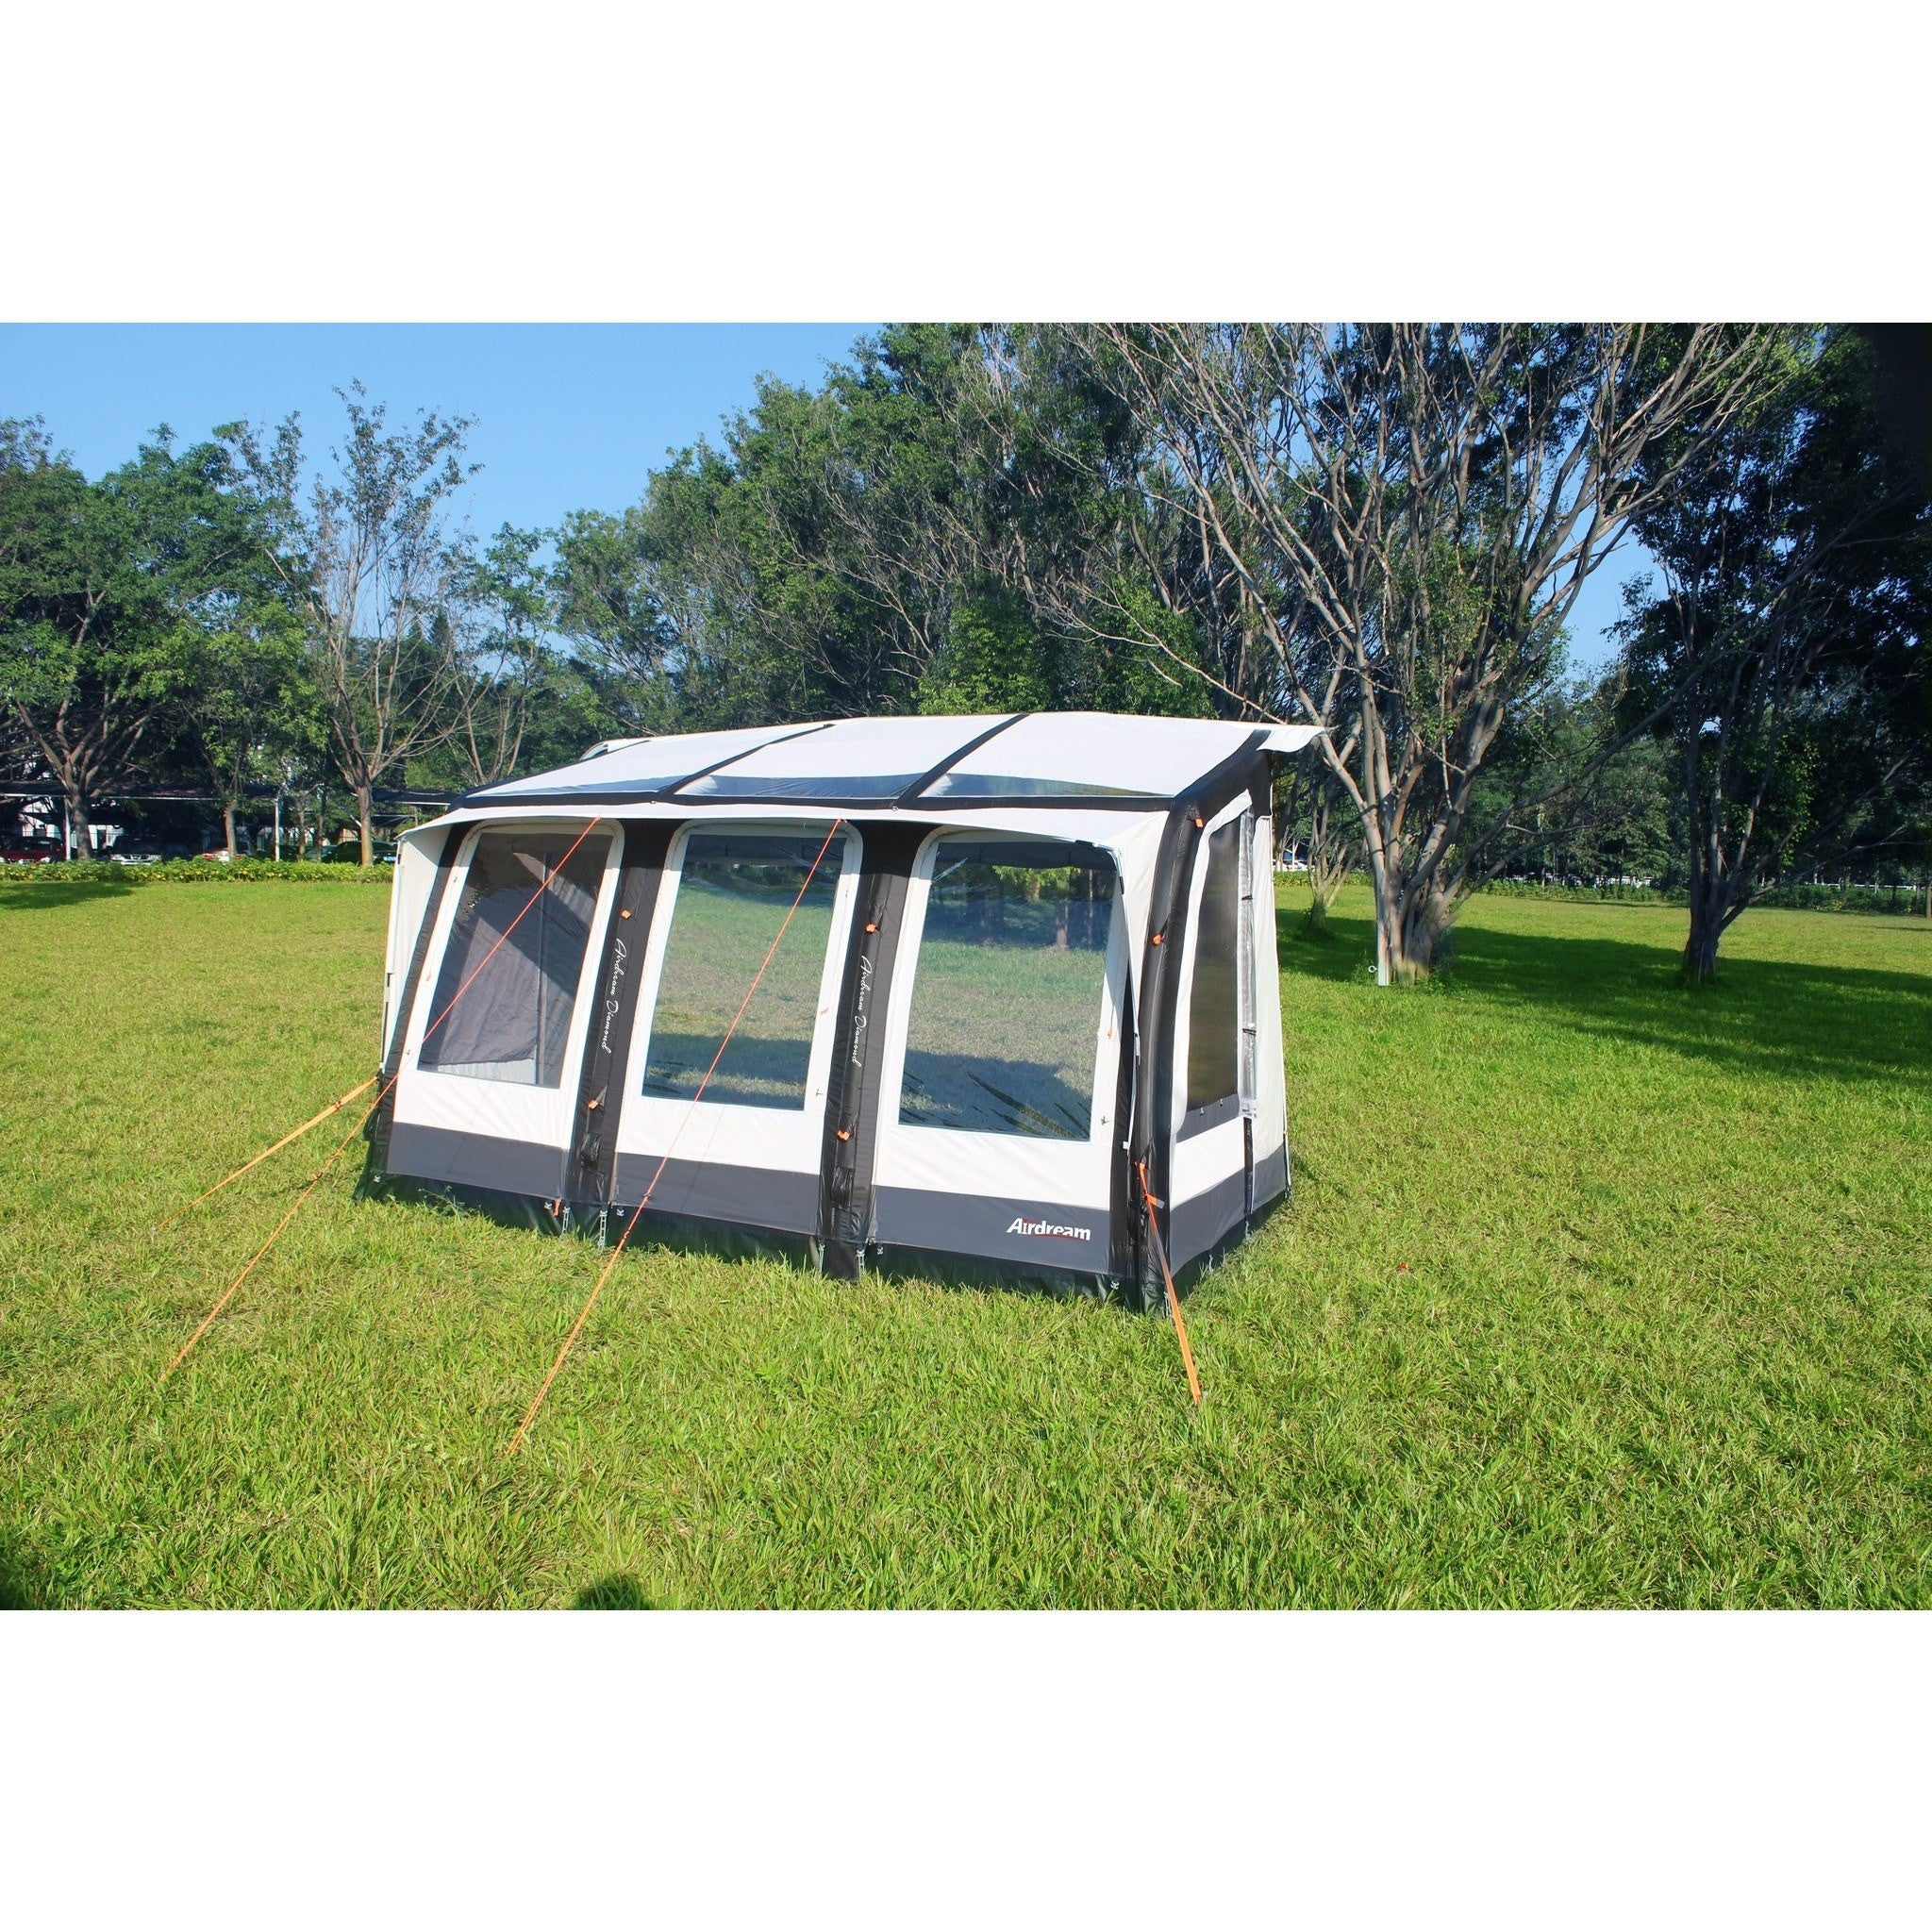 CampTech AirDream Diamond Inflatable Porch Awning + Free ...